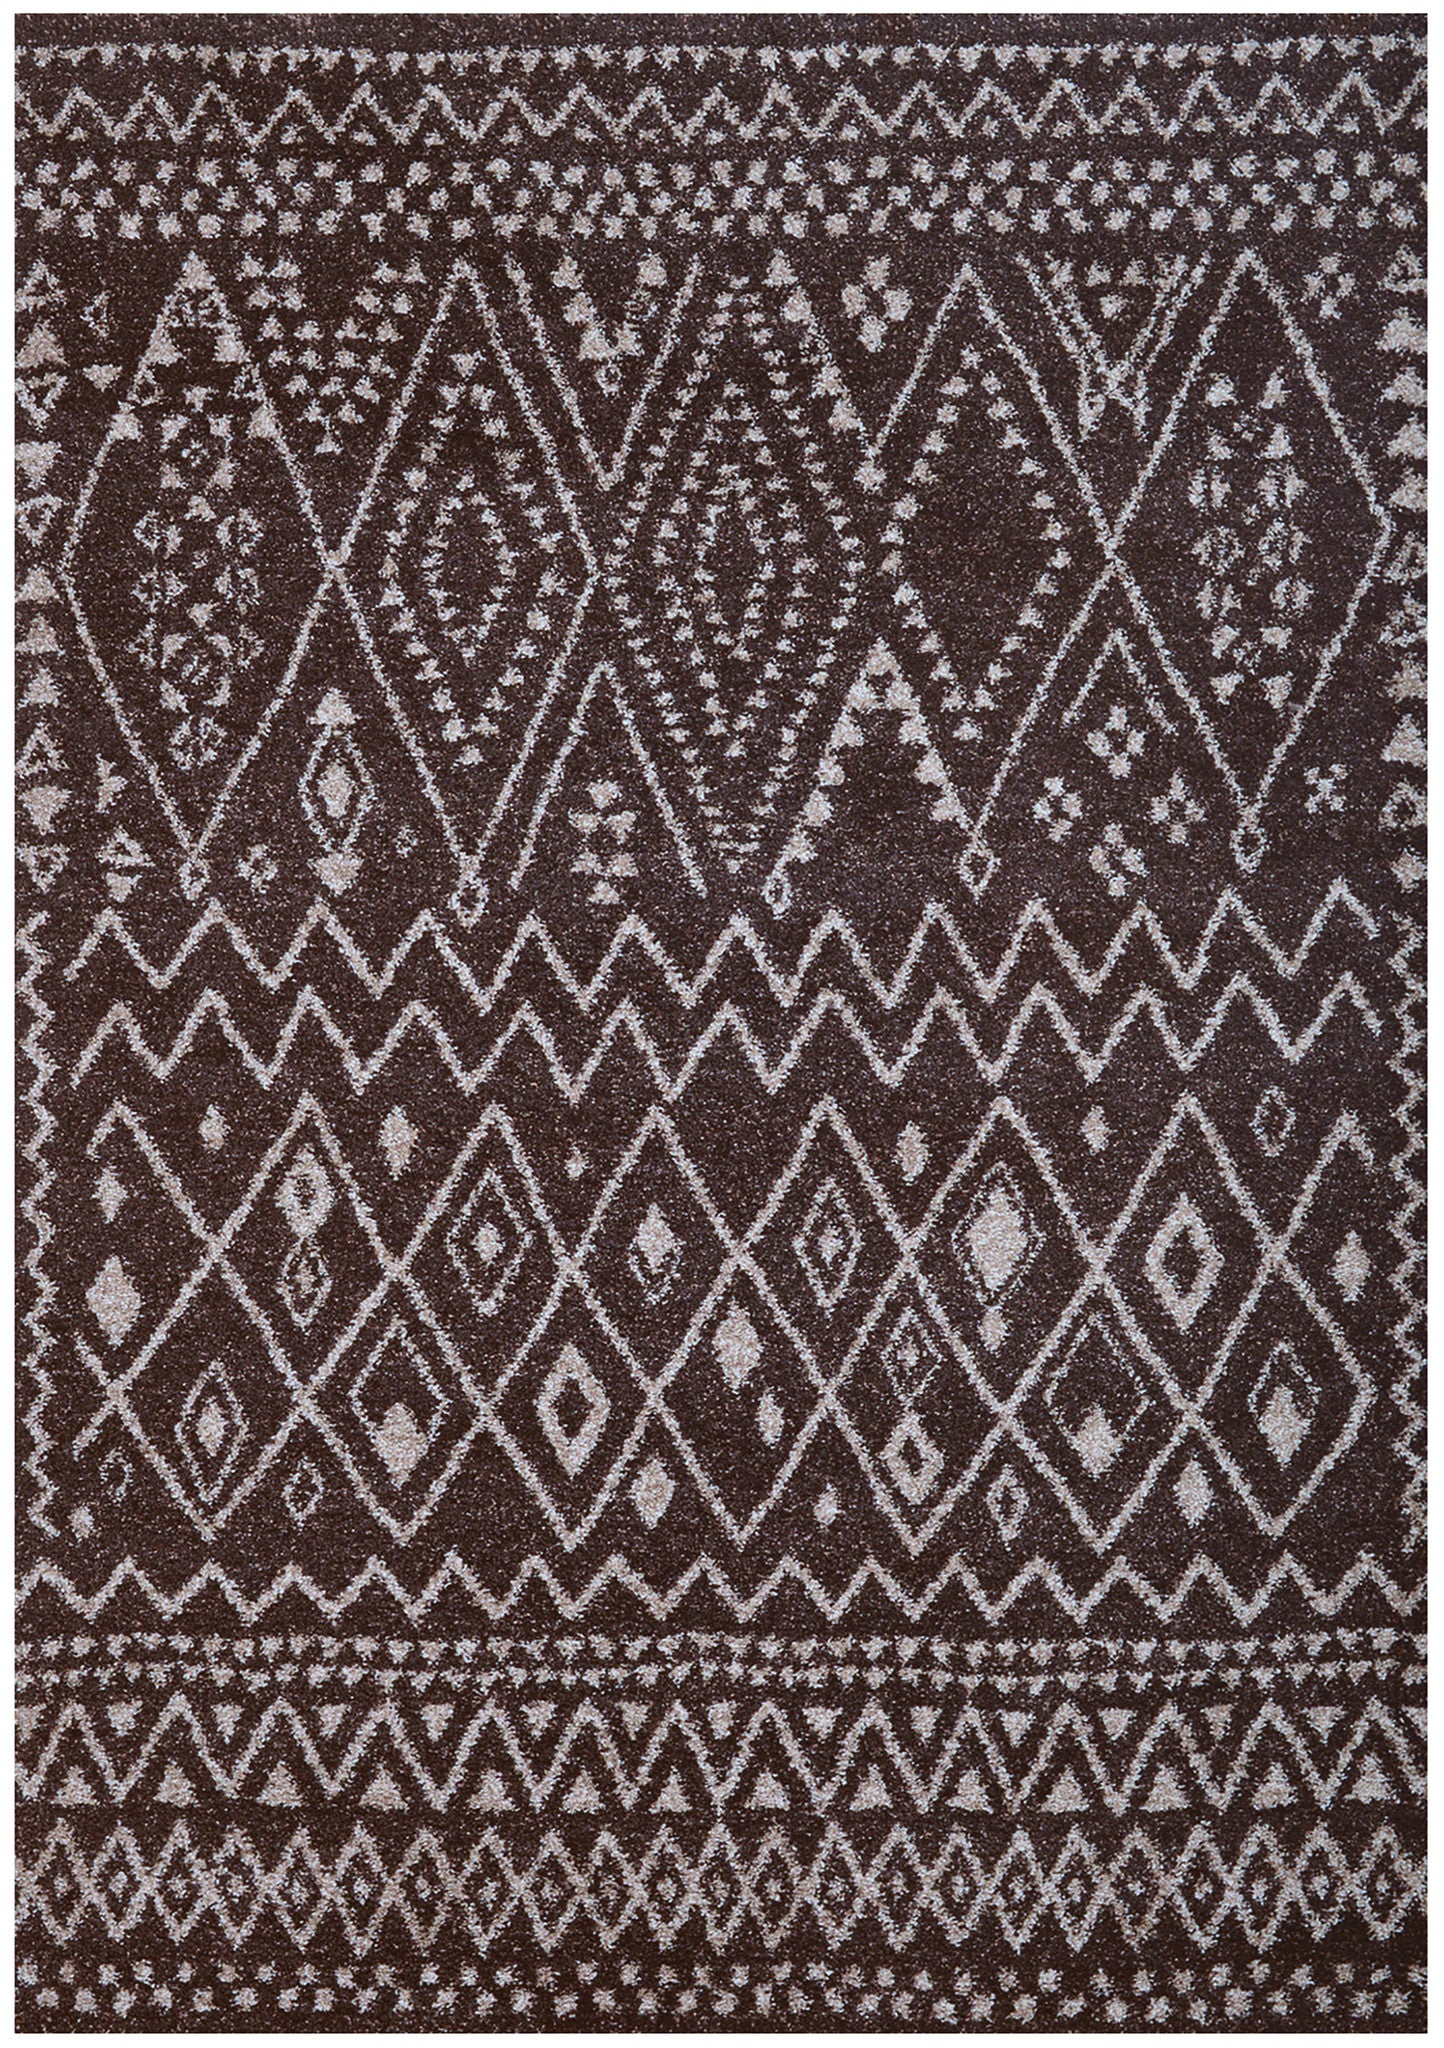 rugs  woodwaves - chocolate gray  ivory zig zag moroccan medieval pattern rug